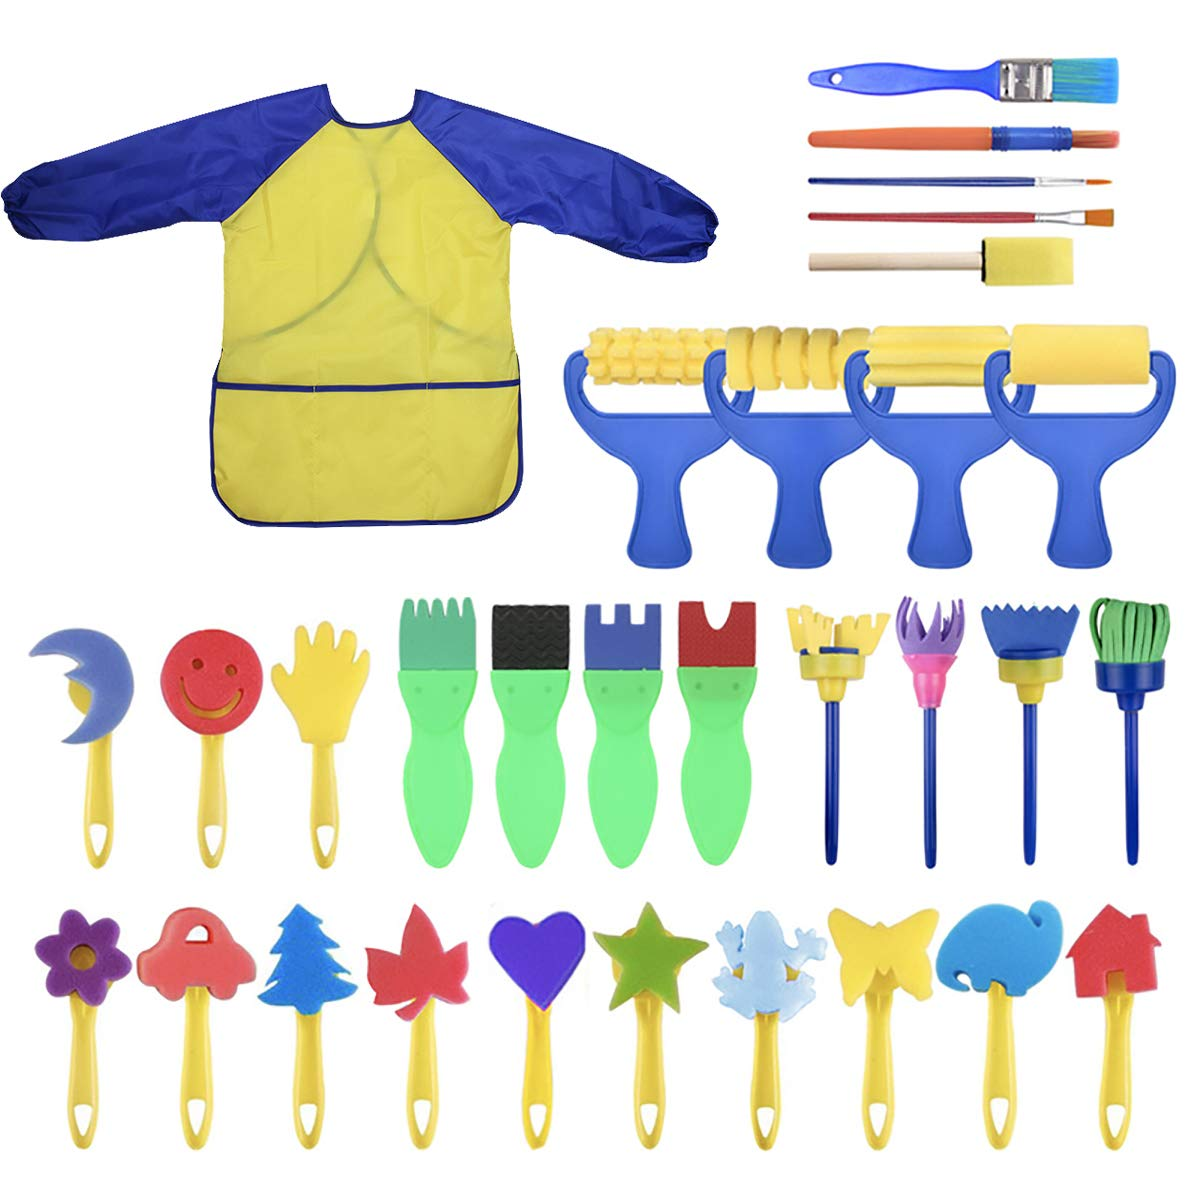 YallFairy Washable Paint Brushes Set for Toddler Kids Early Learning Toys Finger Paints sponges Art Supplies Gifts -nontoxic-100% Baby Safe by YallFairy